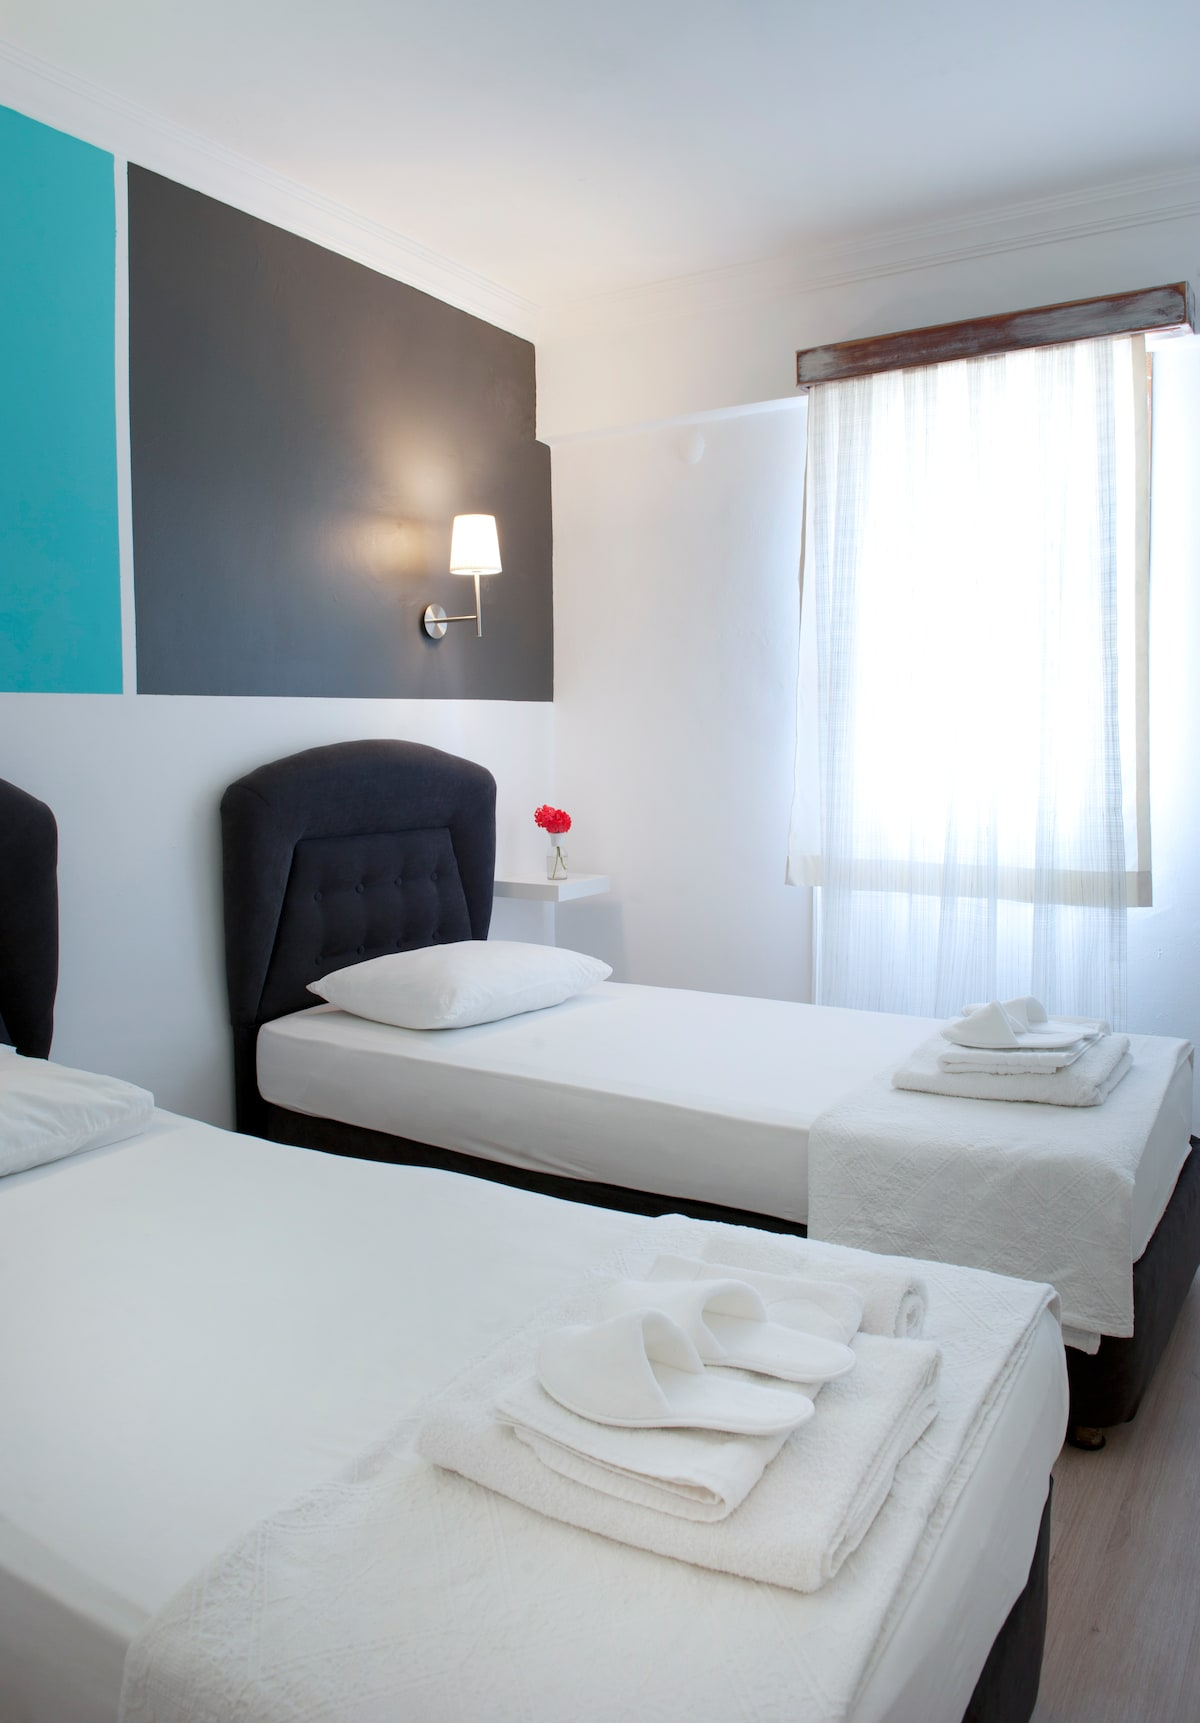 Pudra boutique hotel 2 single beds1